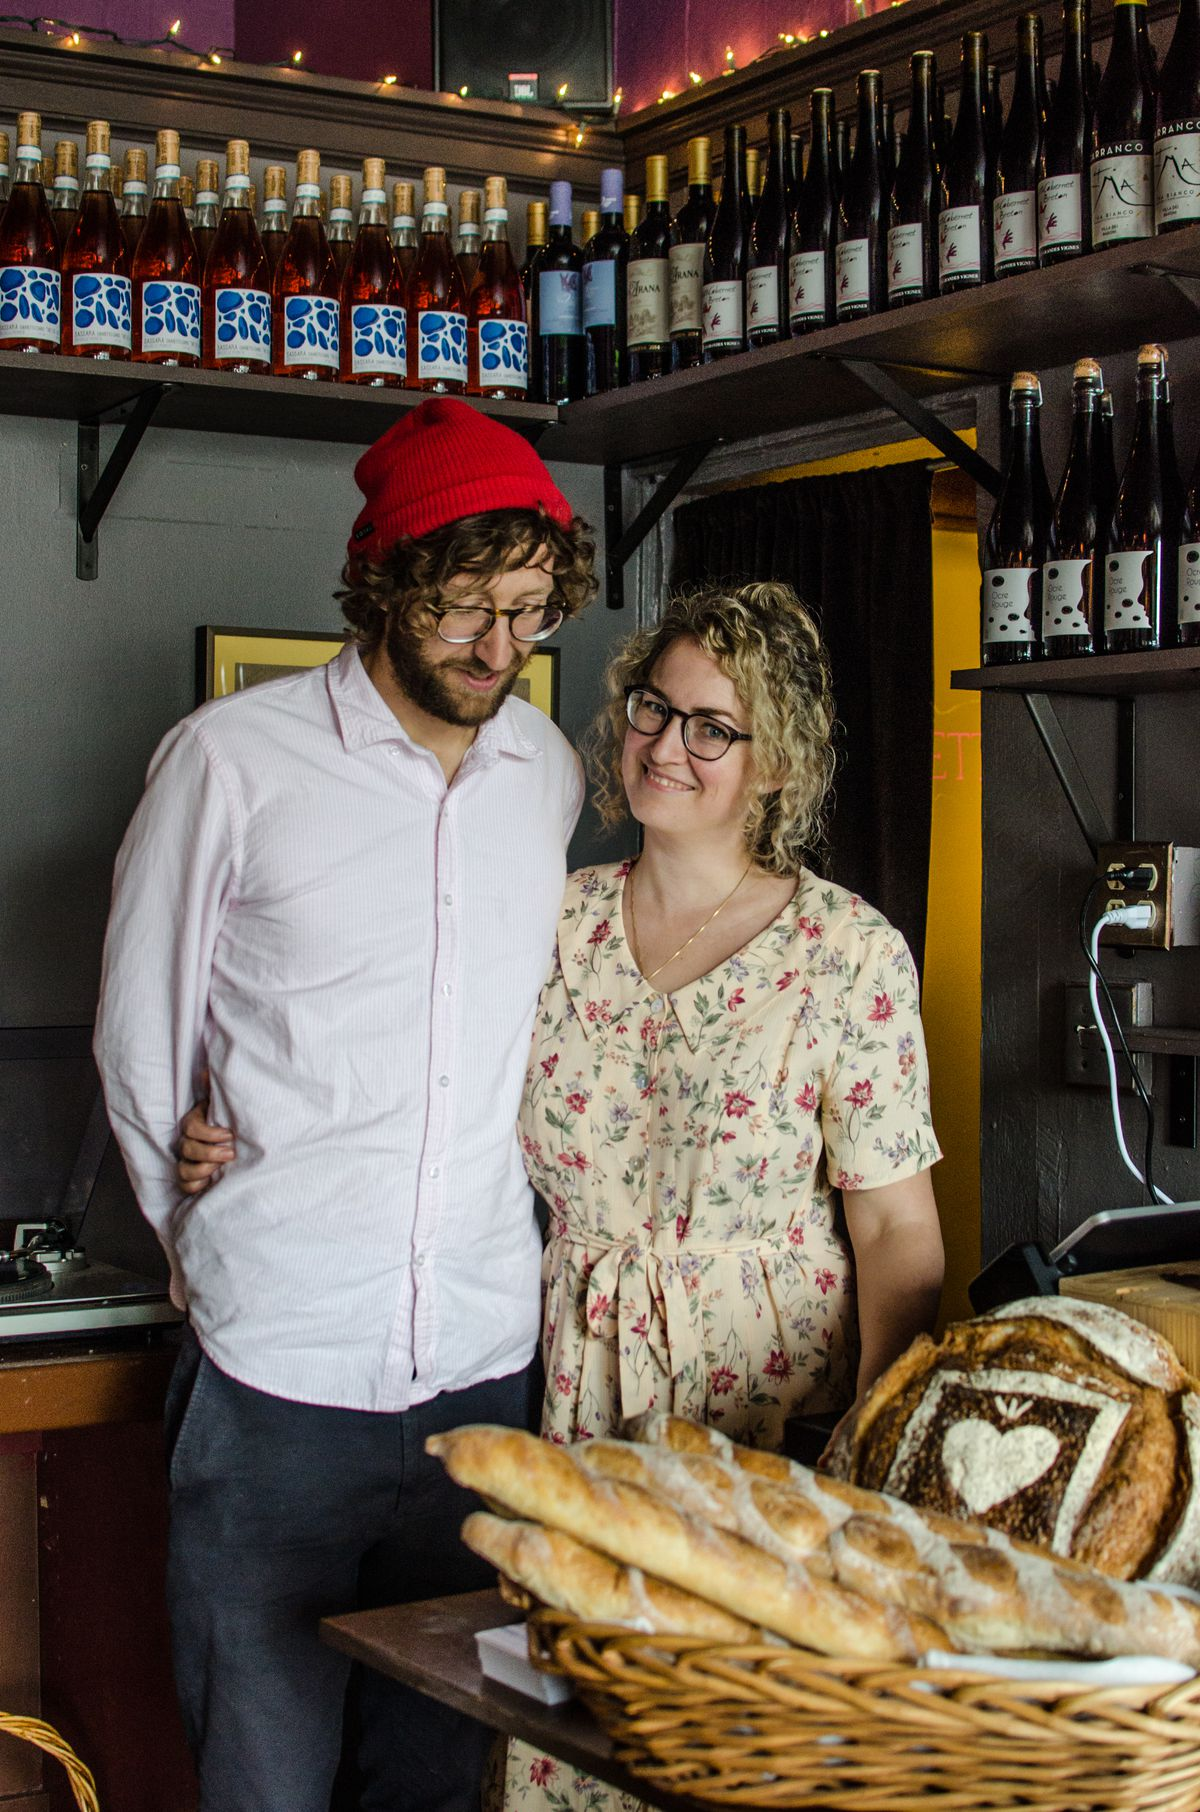 A man and a woman, each with glasses and curly hair, stand in a corner of a wine bar. A basket of bread is in front of them. The woman, in a flowered dress, looks at the camera, while the man, in a button-down pale pink shirt, jeans, and red beanie, looks down.